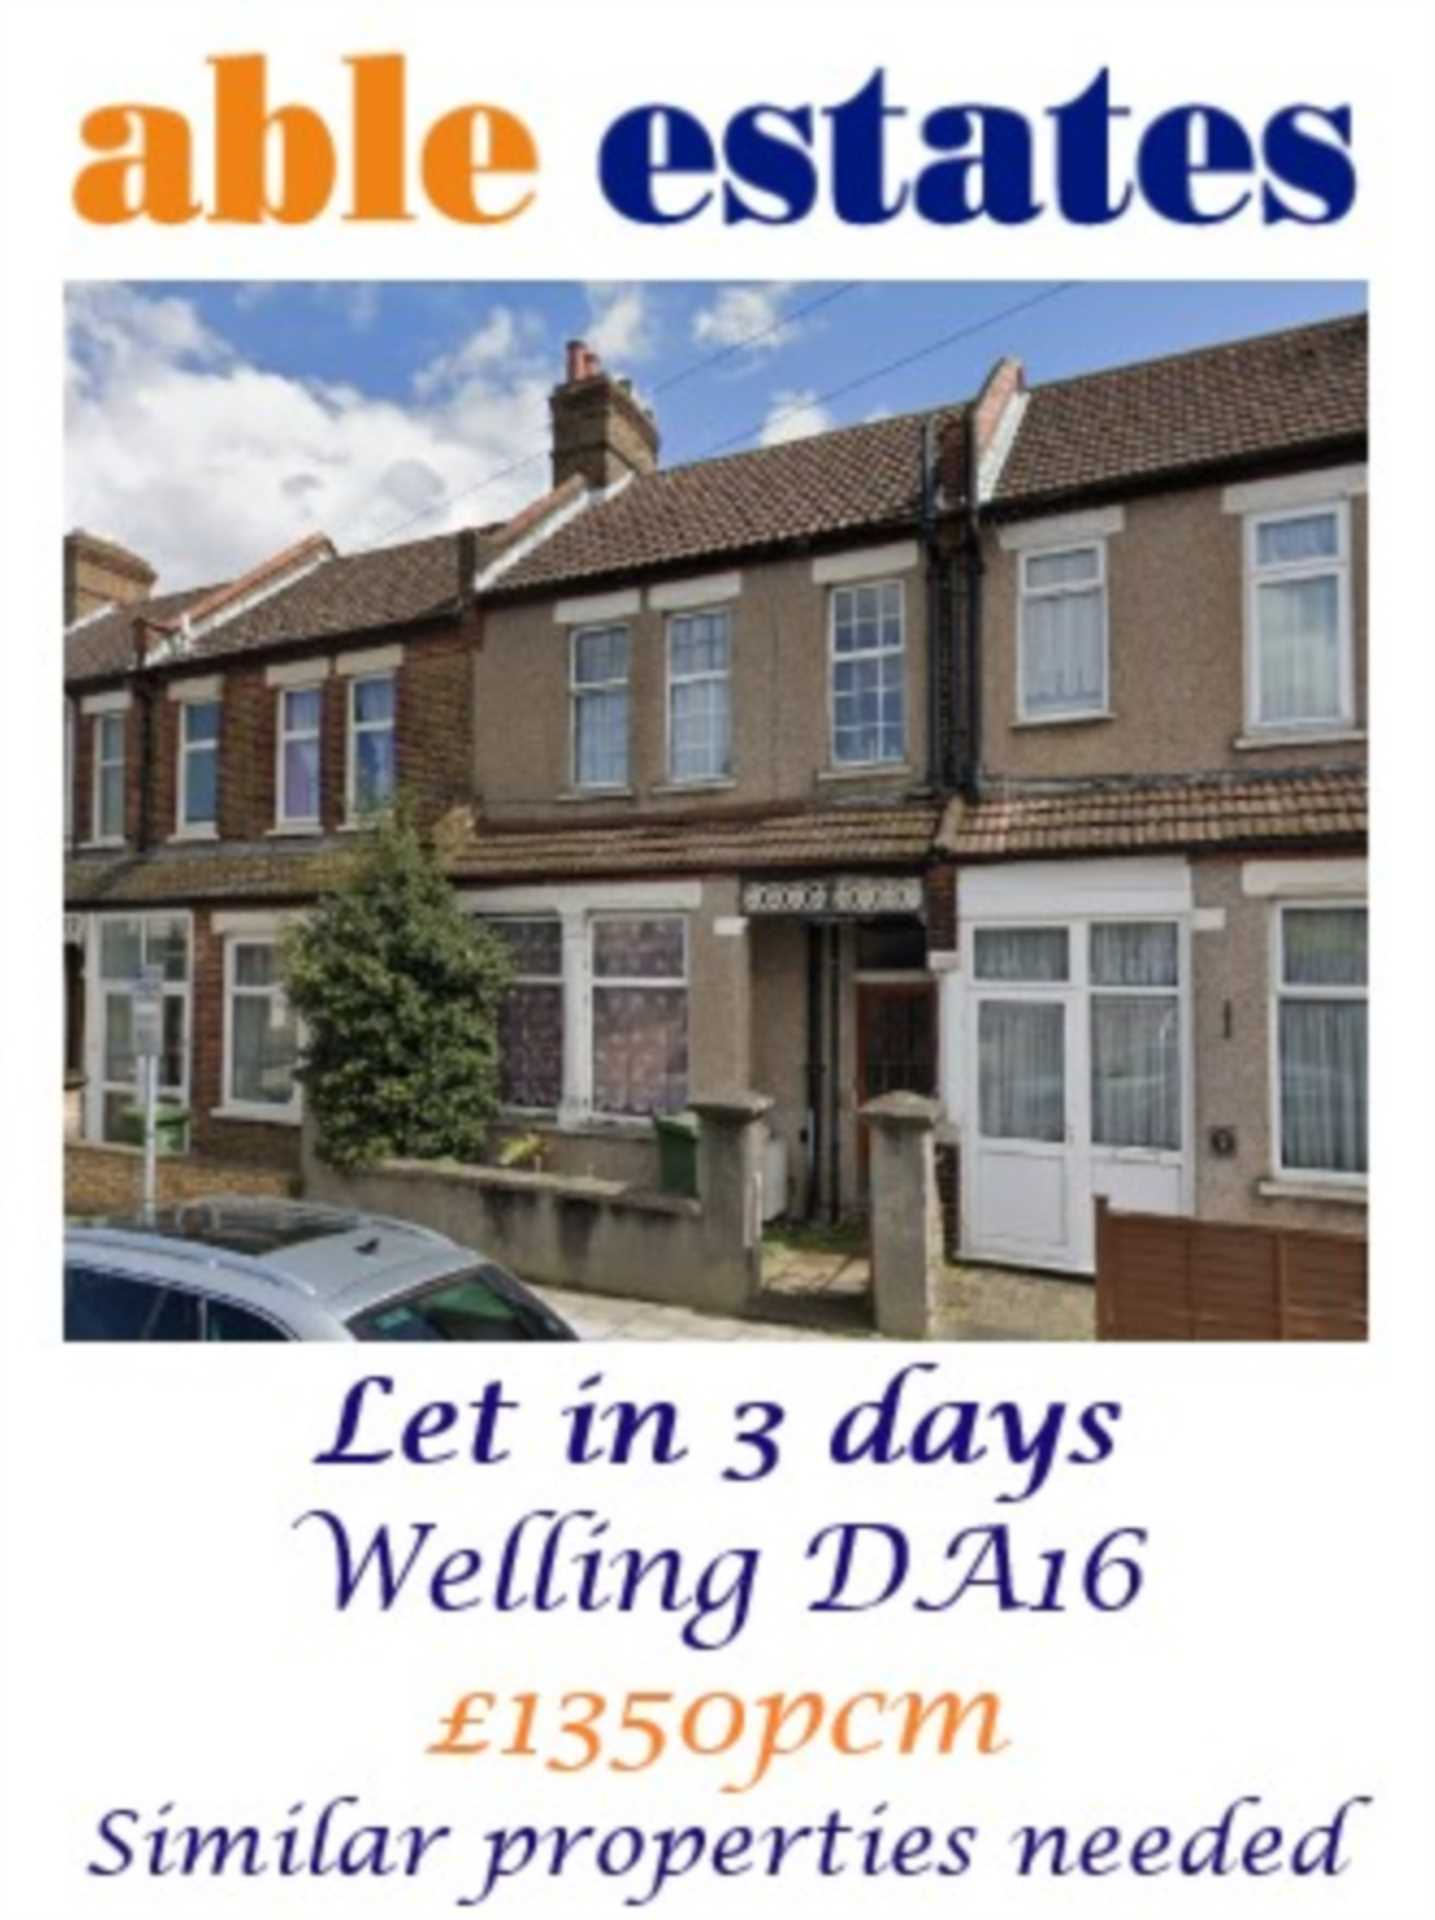 LET WITHIN 3 DAYS! Similar Properties needed!